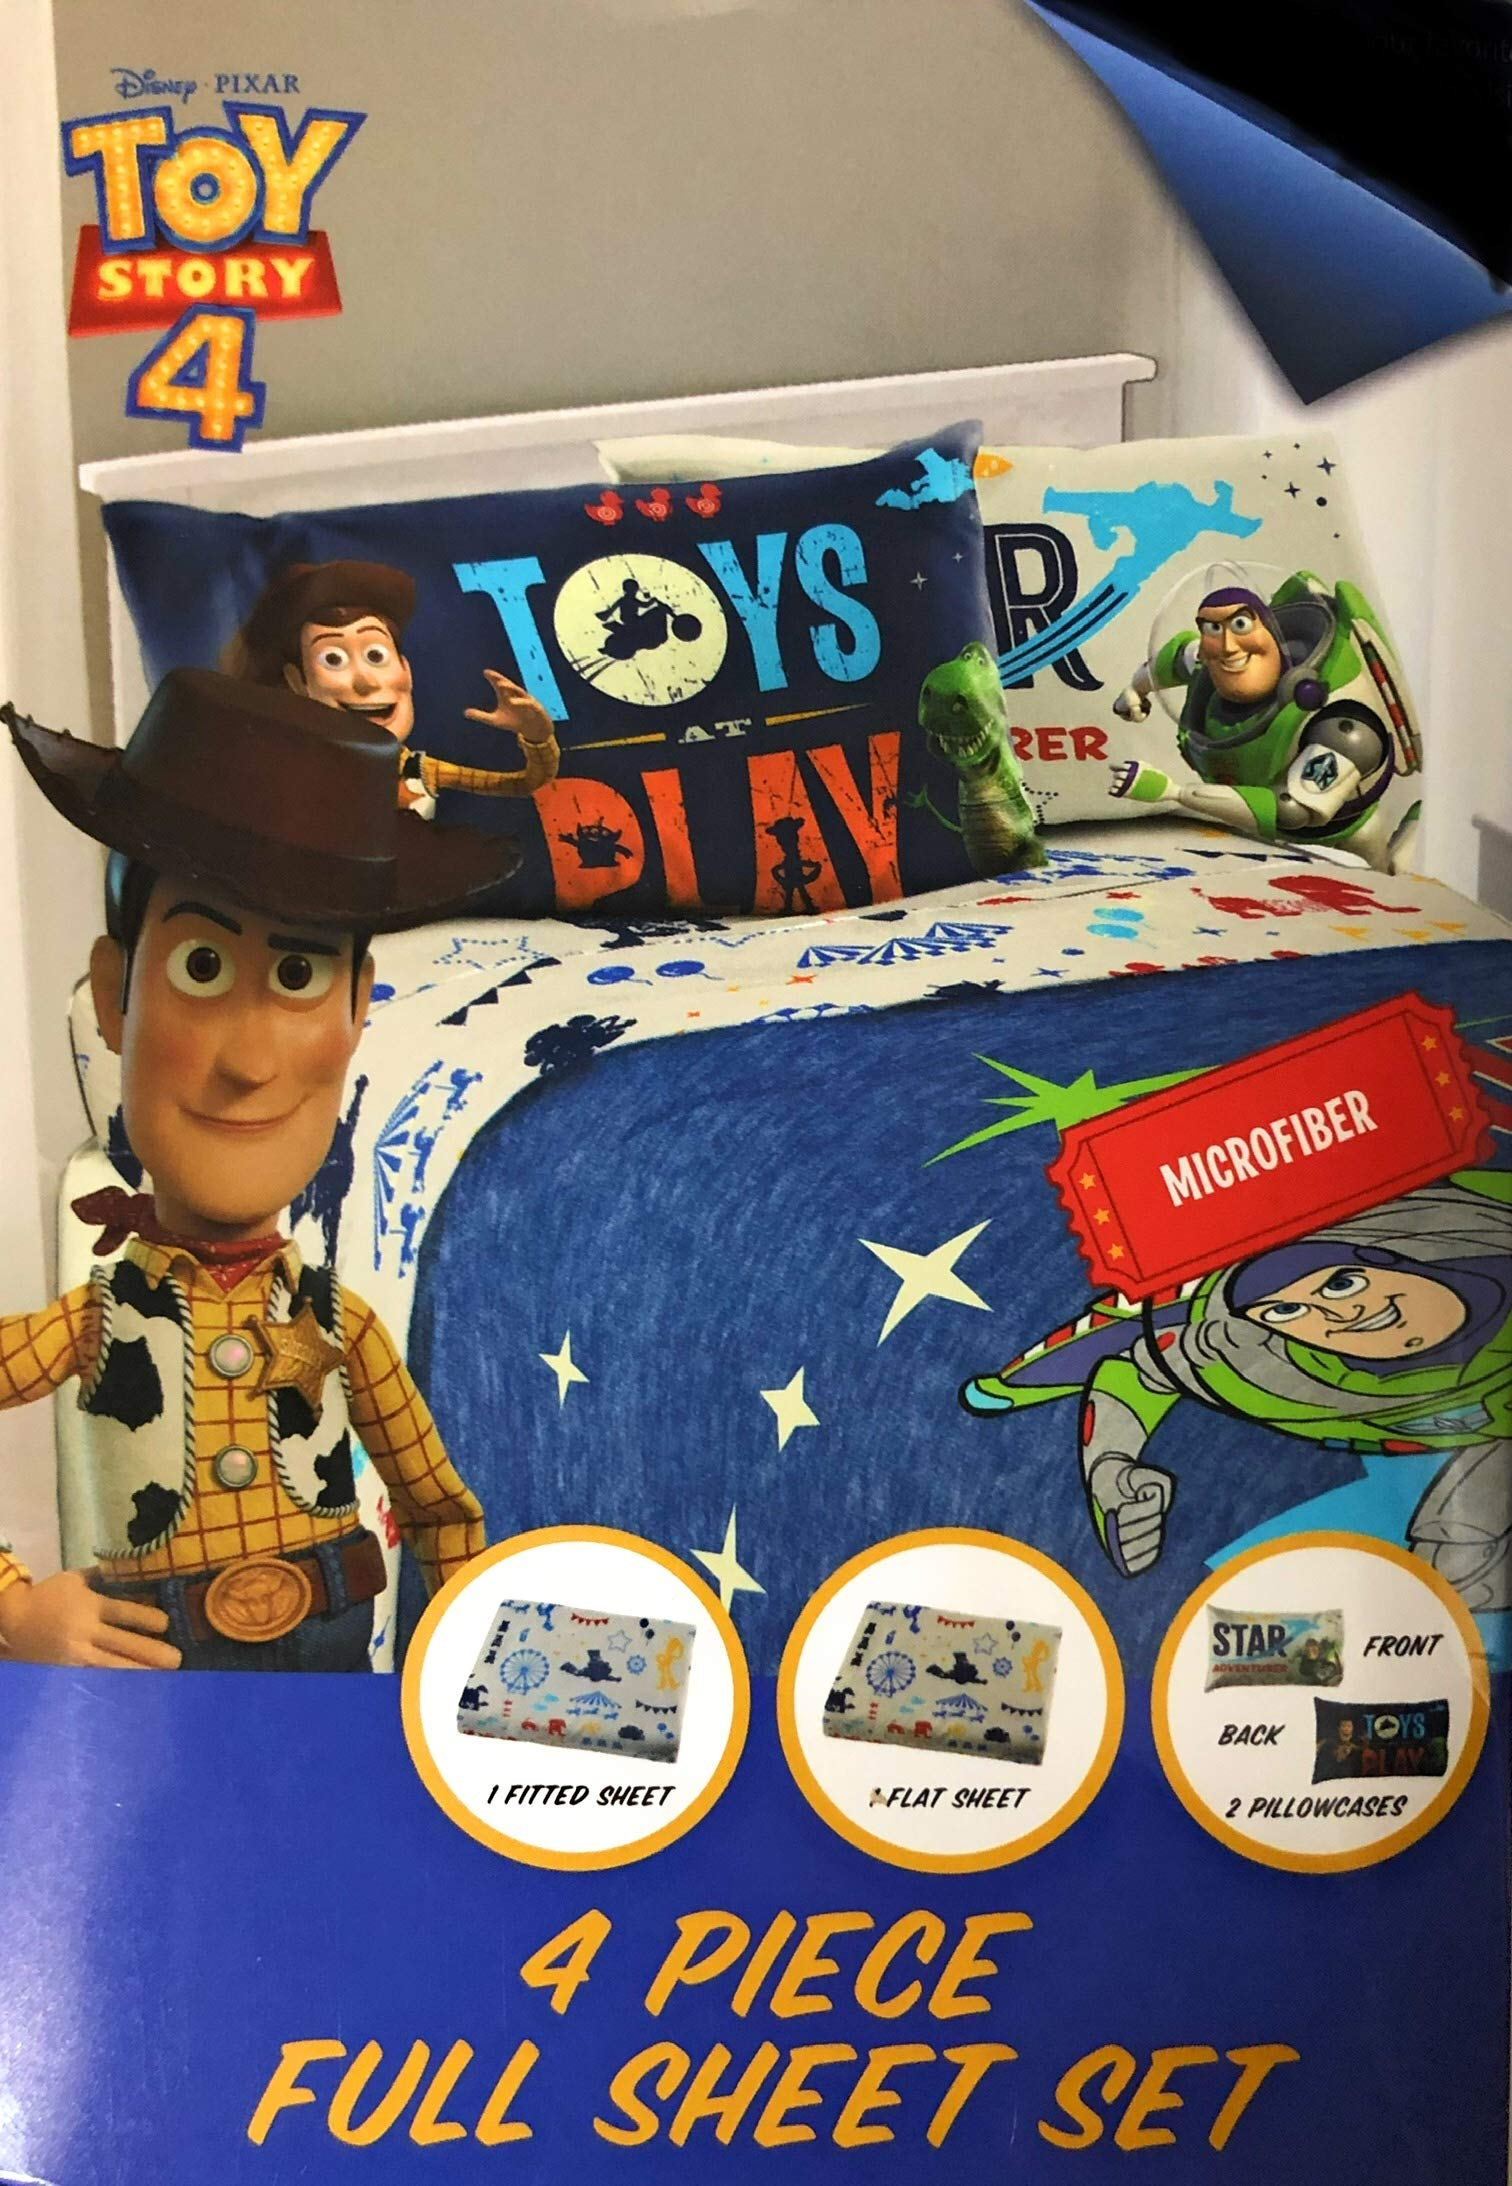 Toys Story 4 Full Sheet Set with 4 Piece Flat, Fitted and 2 Pillowcases